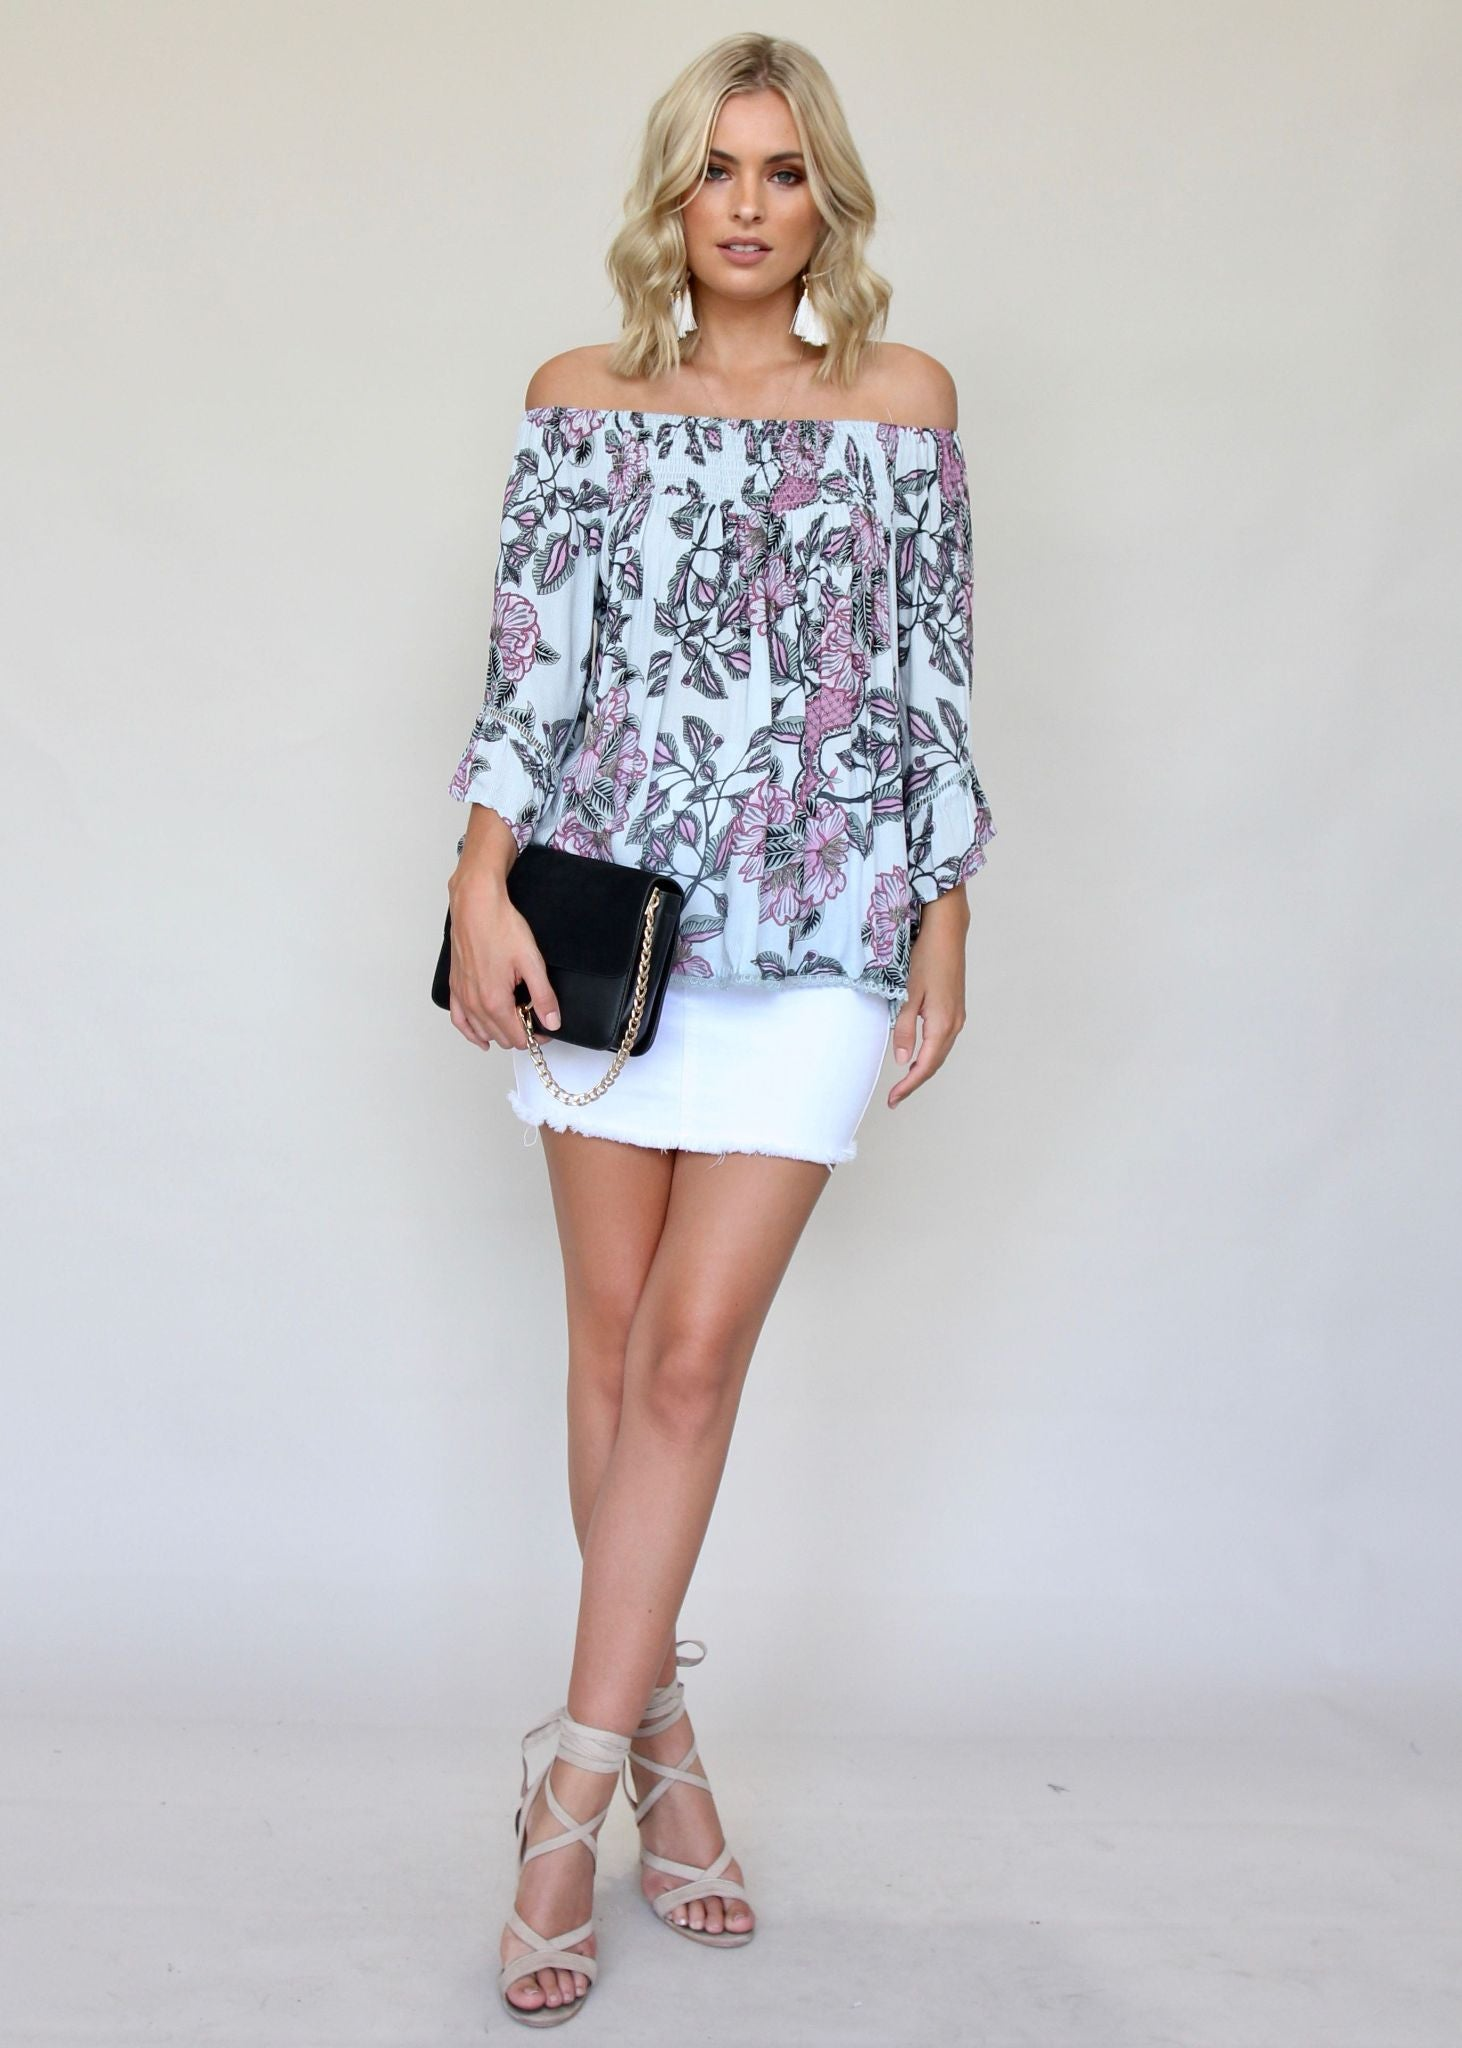 Sugar Night Off Shoulder Top - Pandora